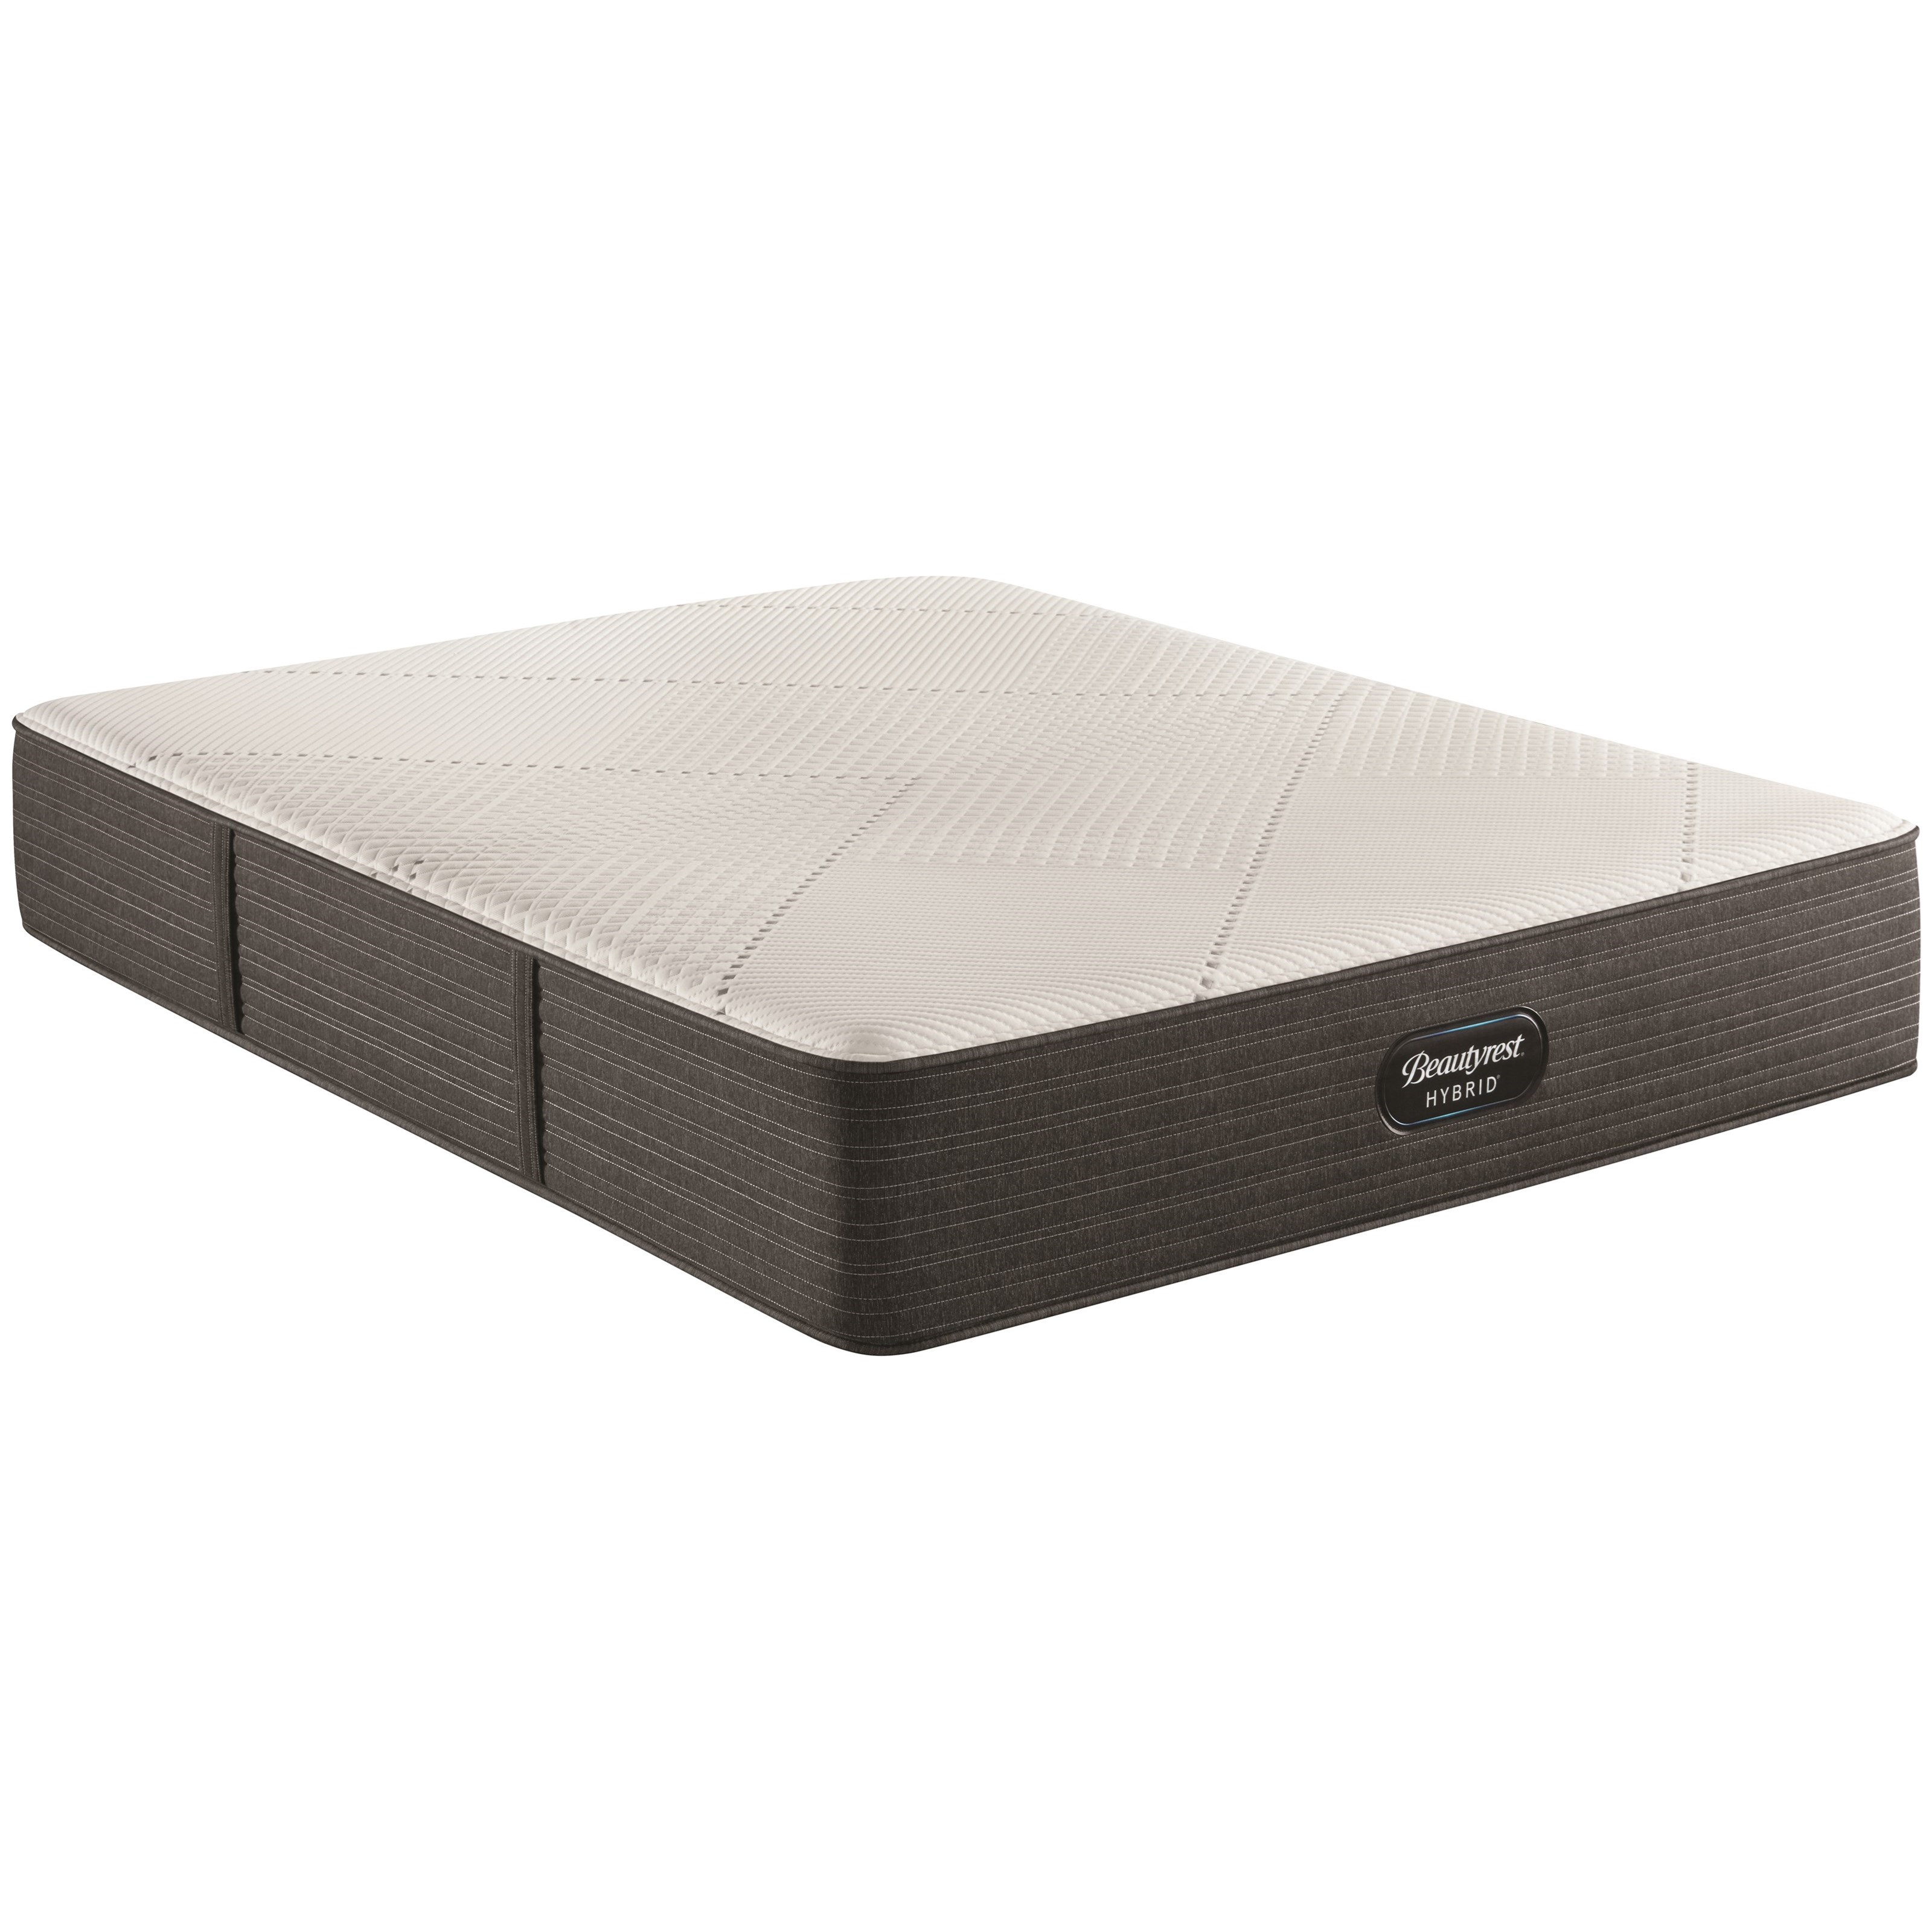 "BRX1000-IP Medium Cal King 13 1/2"" Hybrid Mattress by Beautyrest at Rotmans"